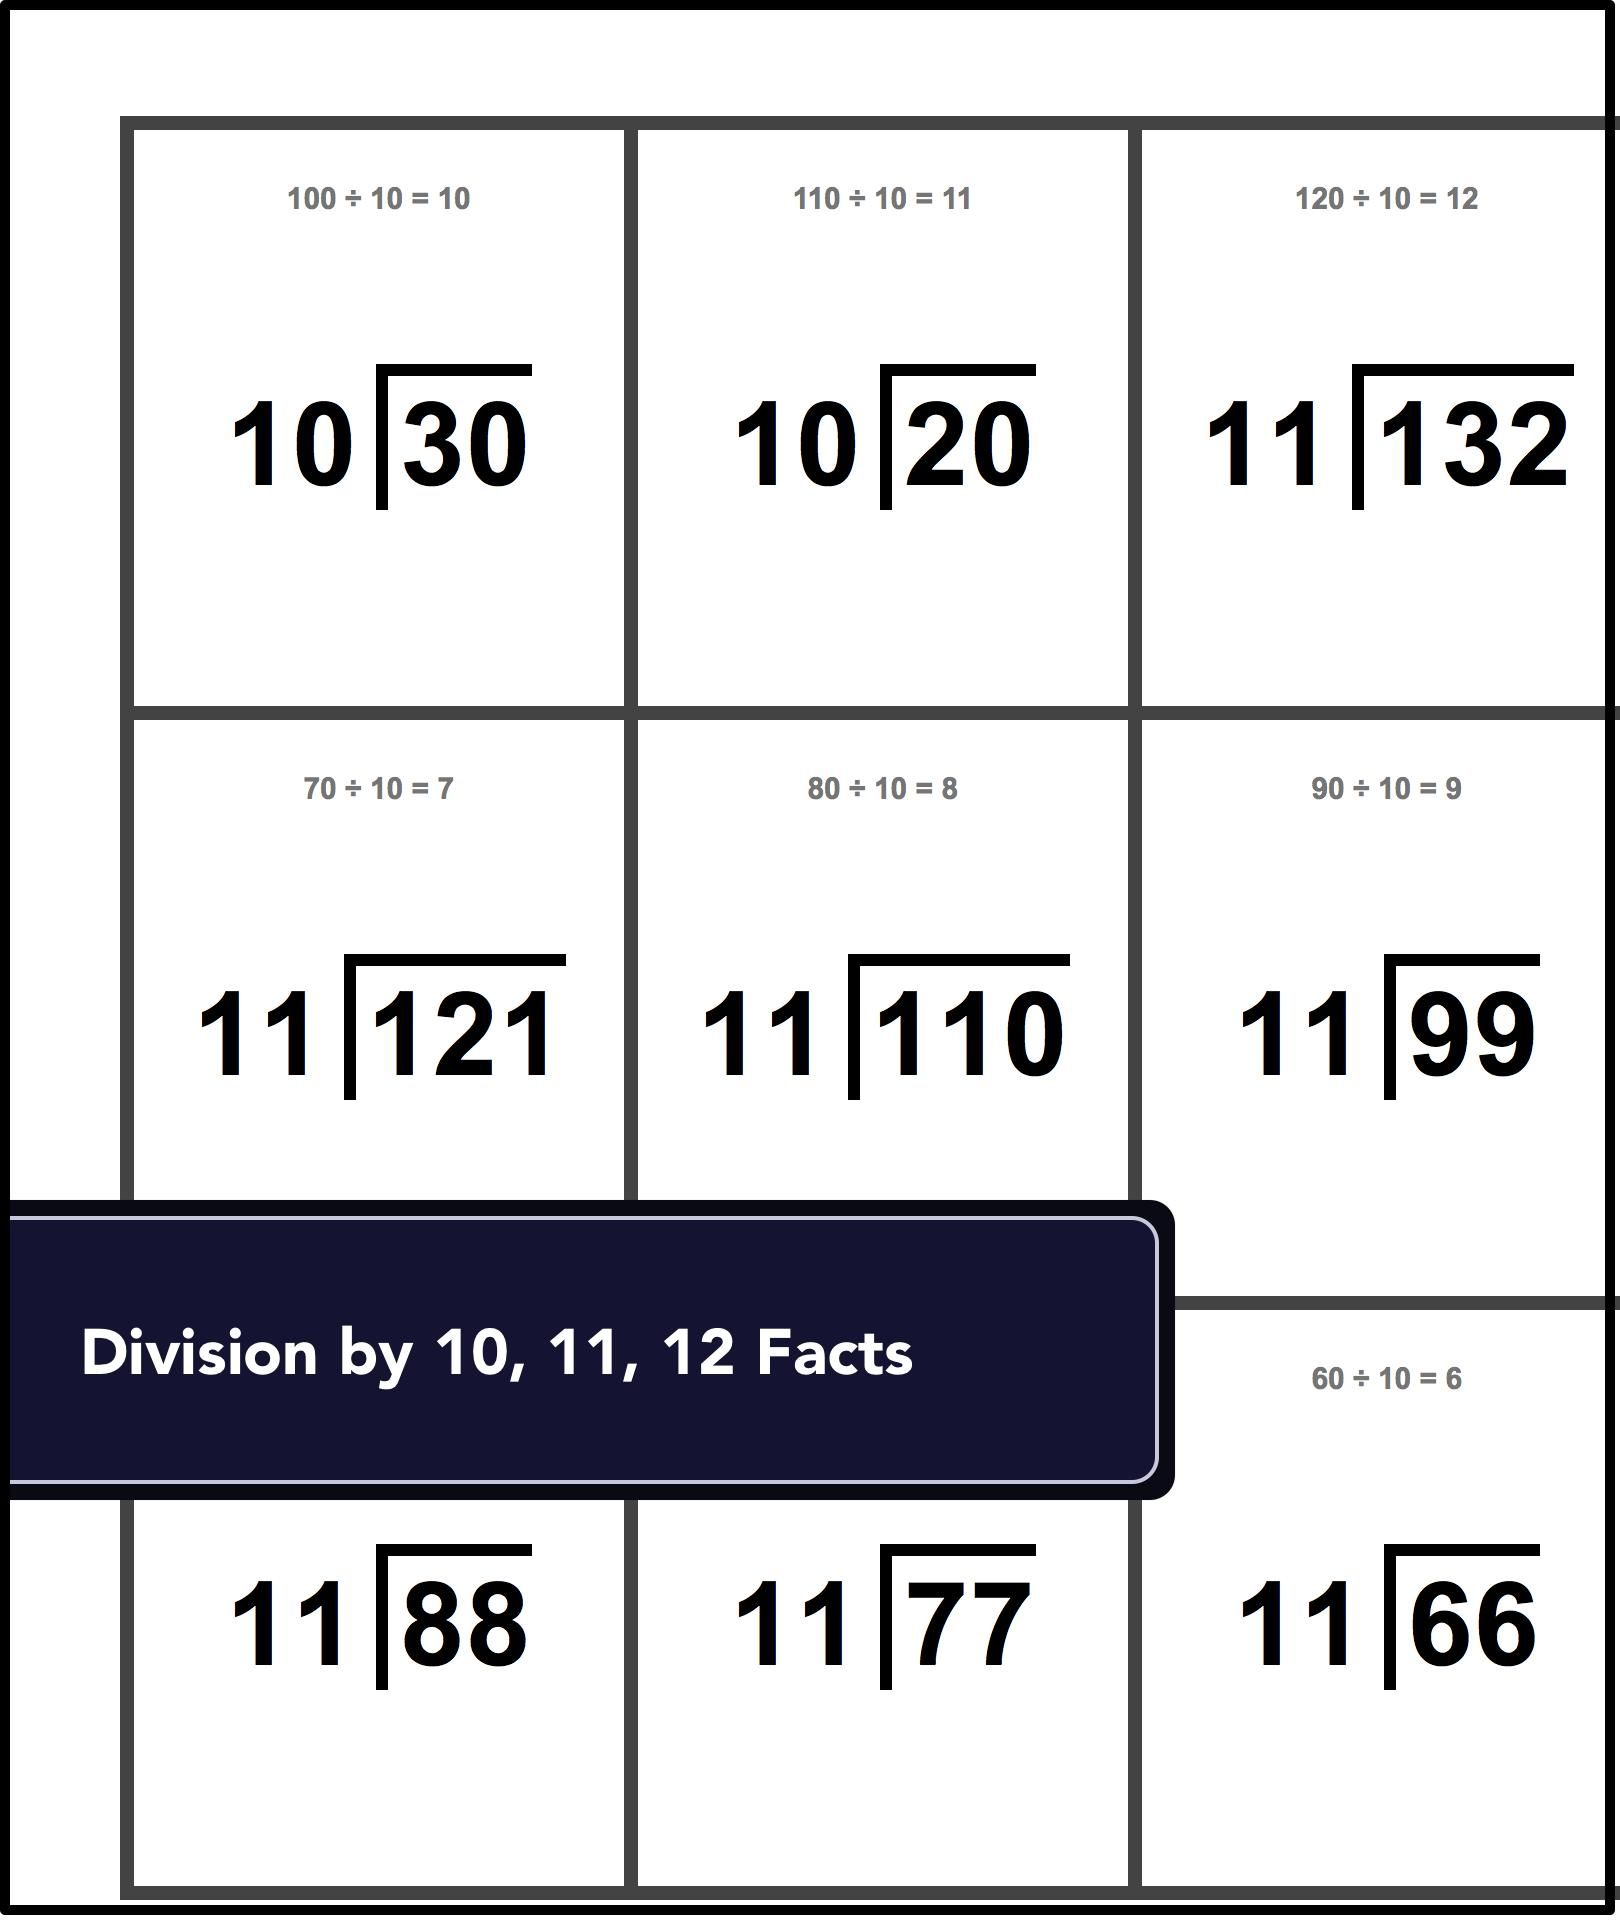 Print Out These Division Flash Cards And Get To Work